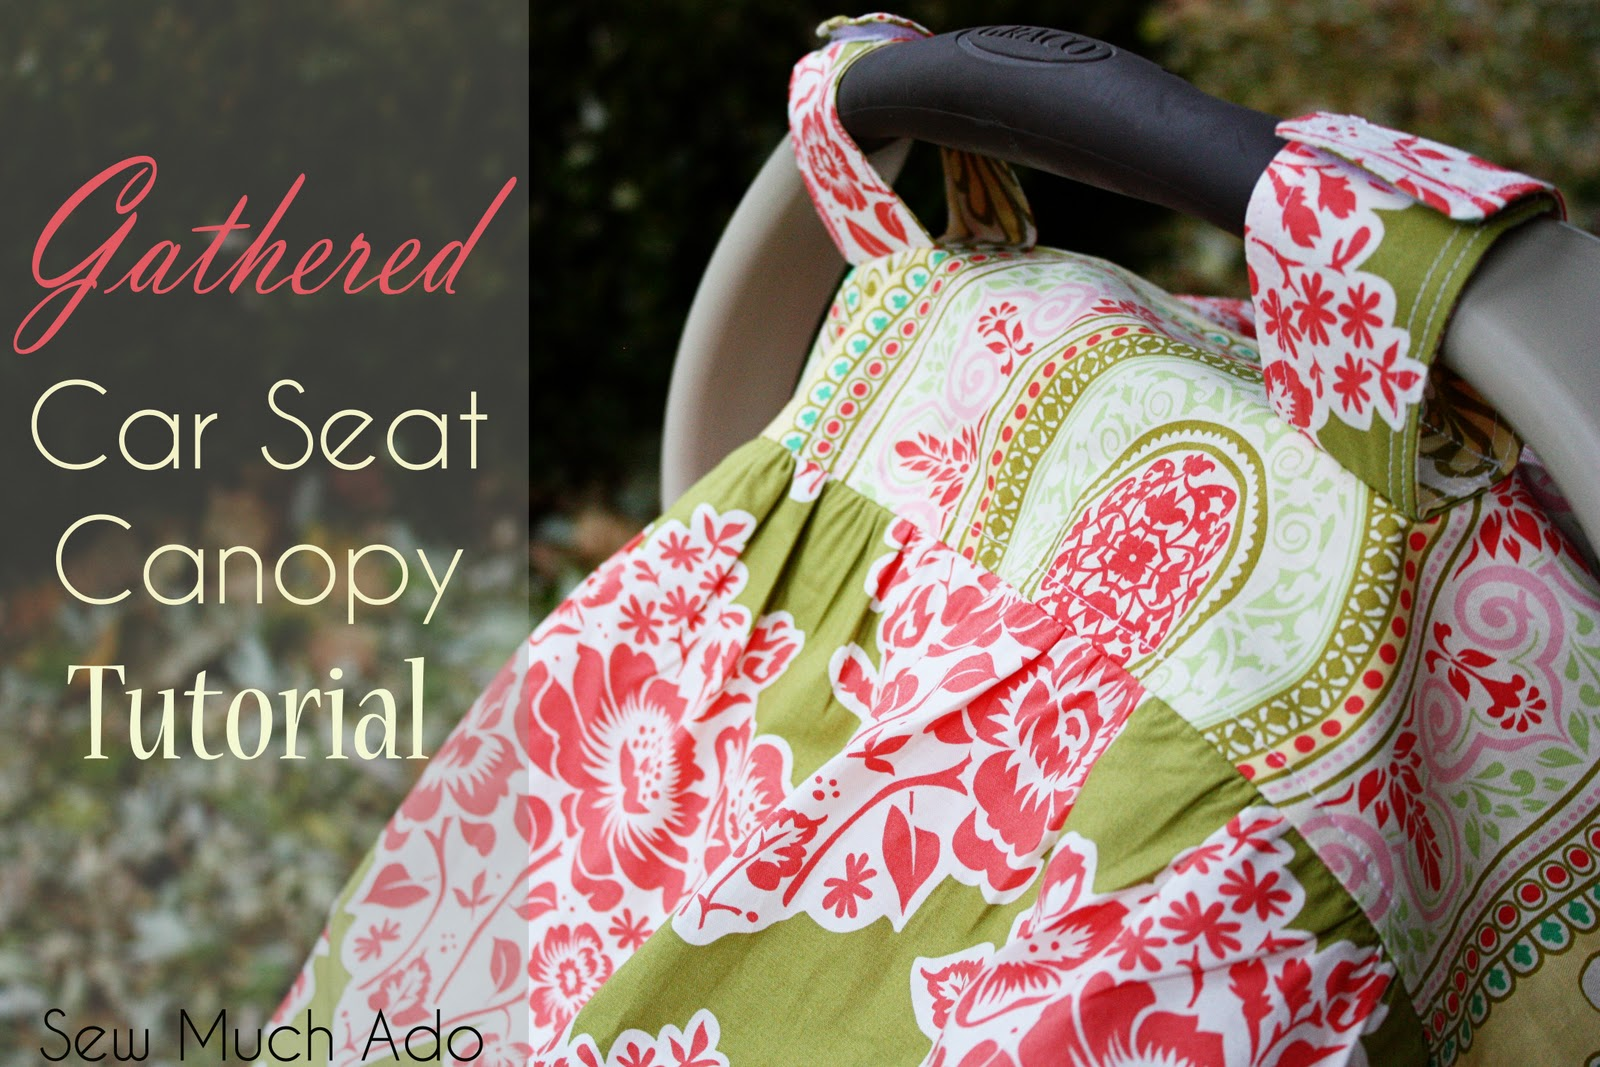 Gathered Car Seat Canopy Tutorial & Gathered Car Seat Canopy Tutorial - Sew Much Ado